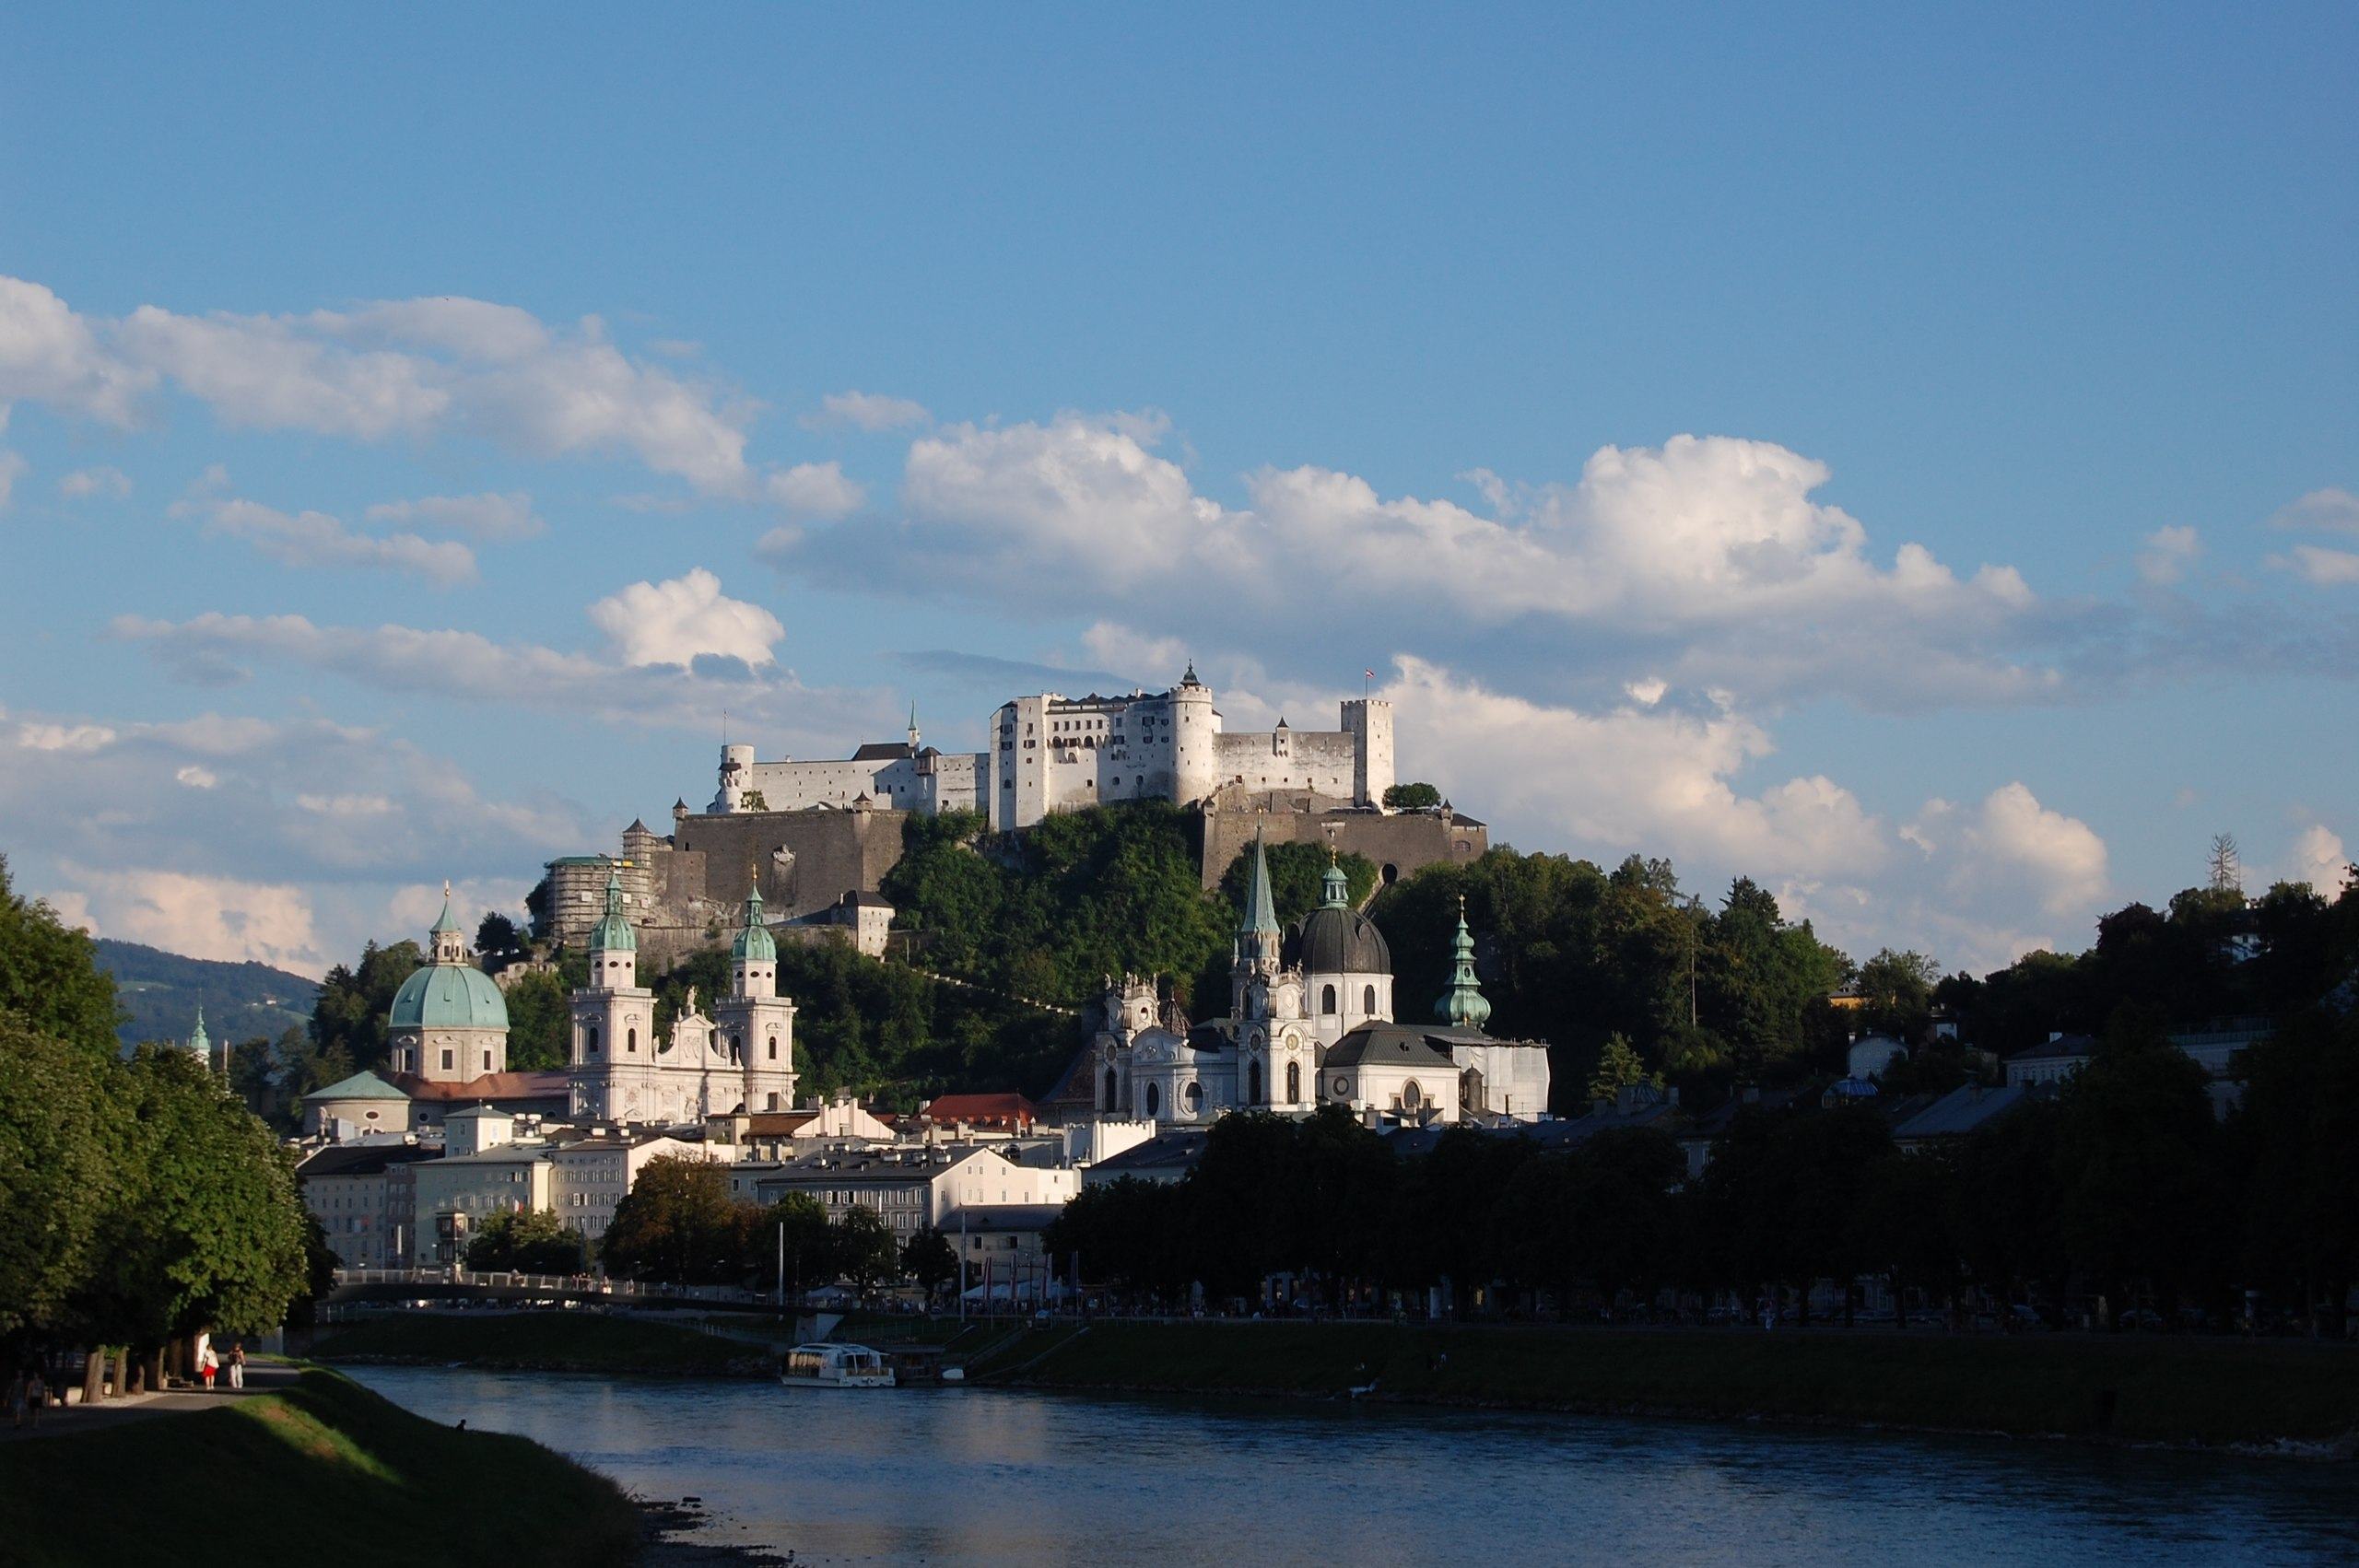 This image shows the Hohensalzburg Fortress perched atop the Festungsberg in Salzburg.